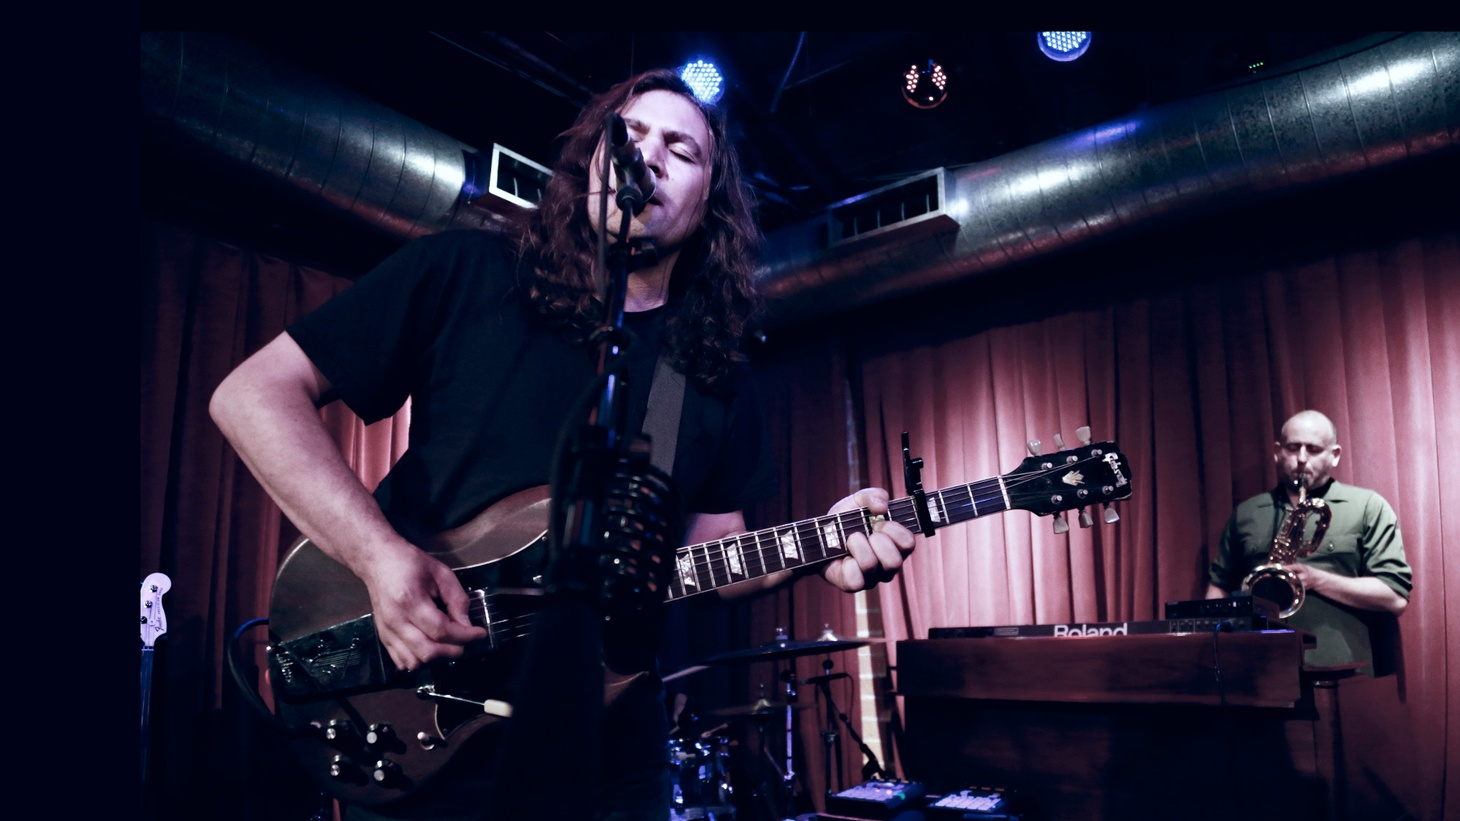 To say 2014's Lost in the Dream was a breakthrough album for Philly rockers The War on Drugs would be a vast understatement. We've been eagerly anticipating their followup, A Deeper Understanding, and they did not disappoint.